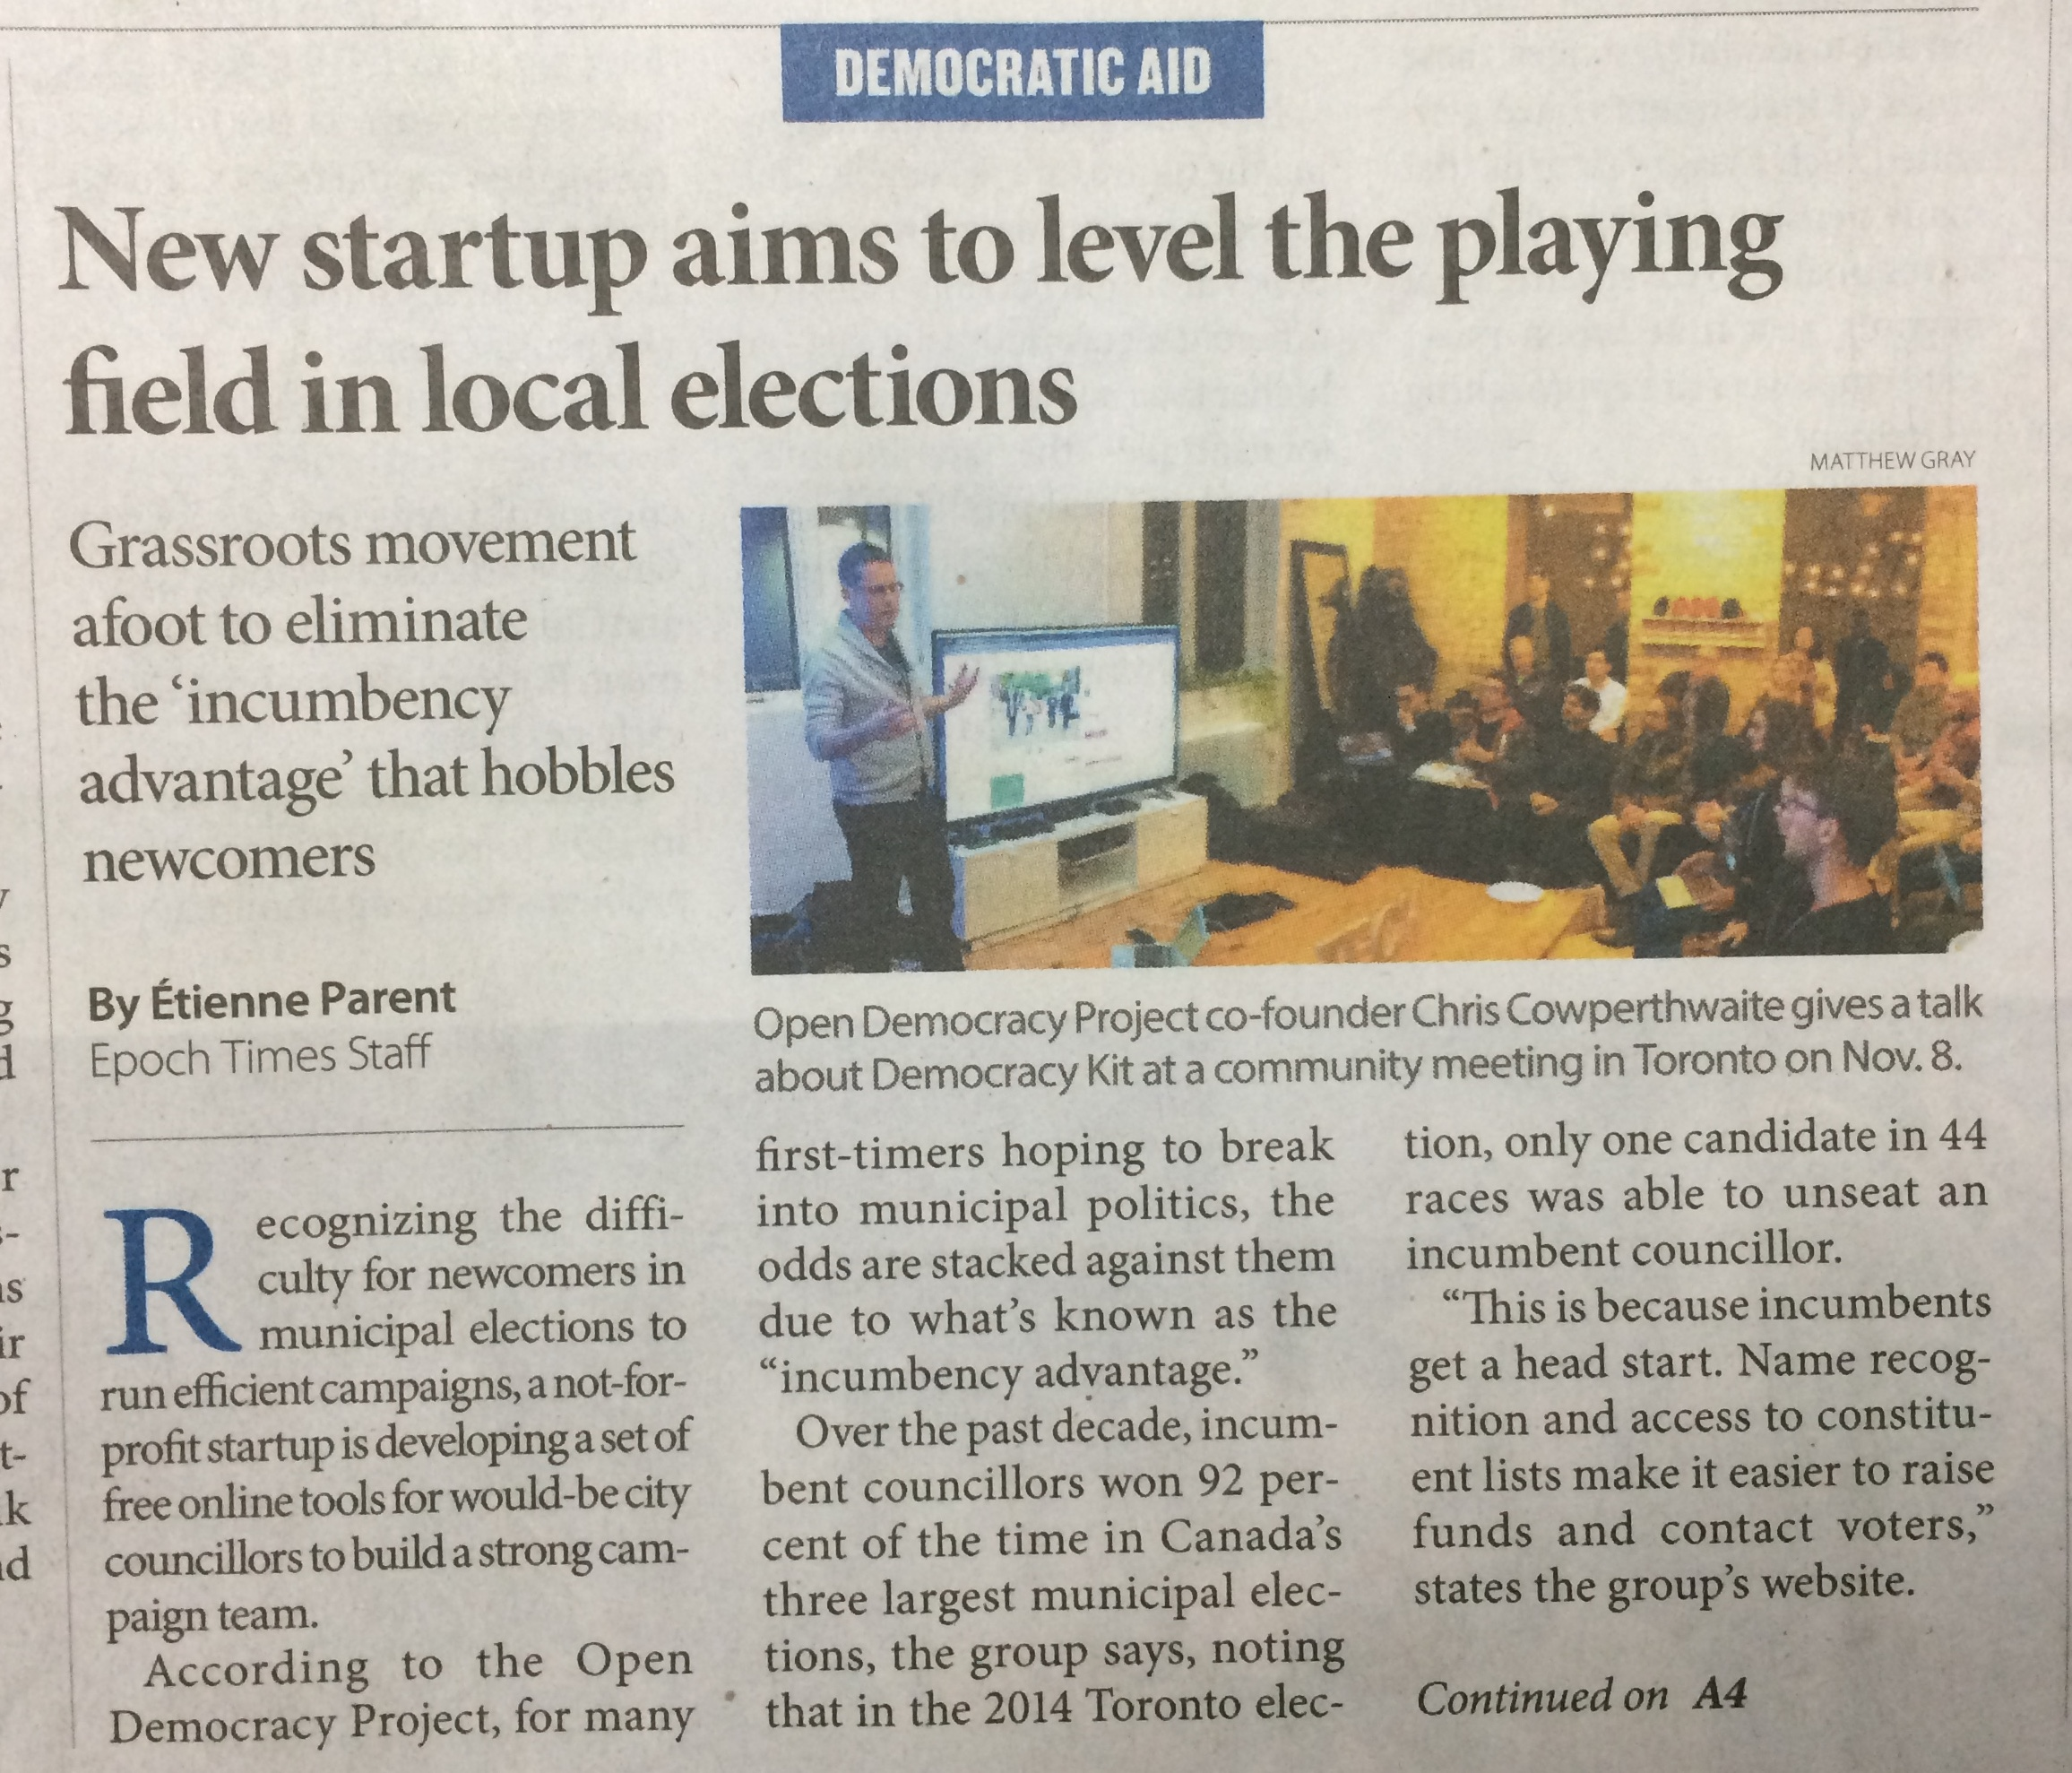 New Startup Aims to Level the Playing Field in Local Elections - The Epoch Times